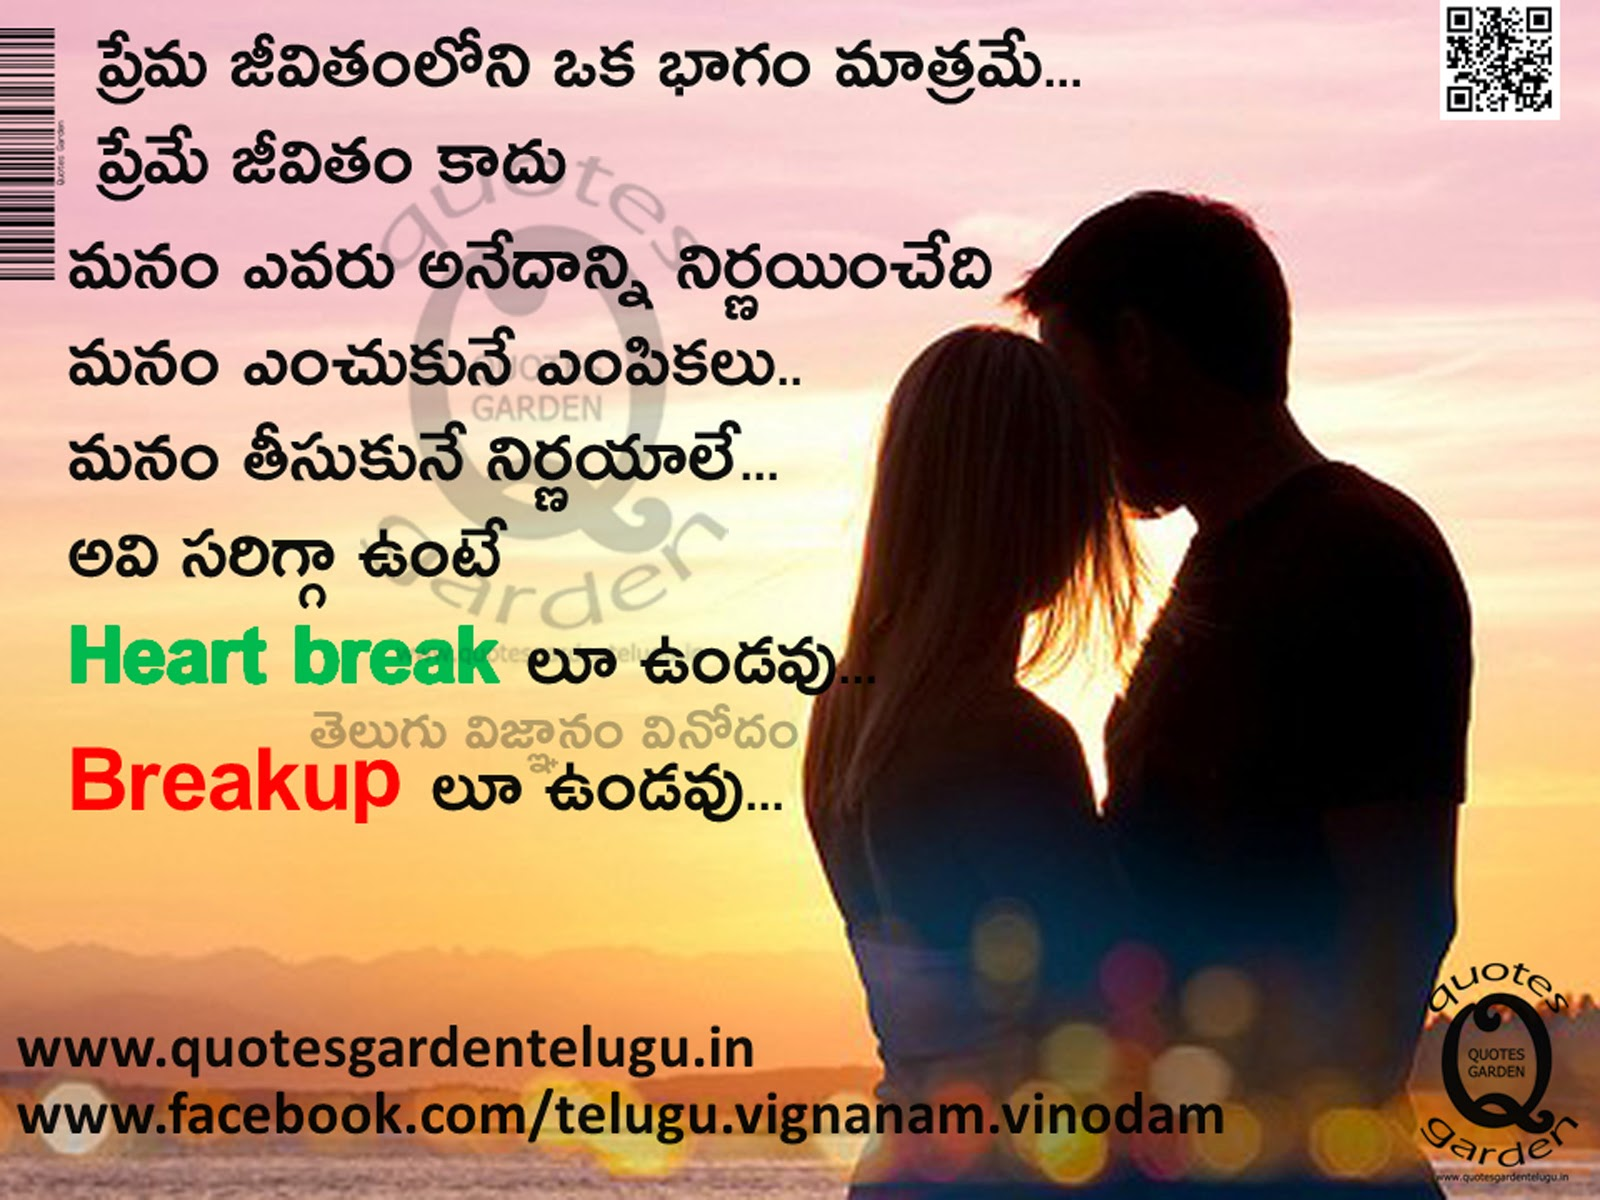 Telugu Love Quotes Gorgeous Telugu Love And Inspirational Quotes  Quotes Garden Telugu